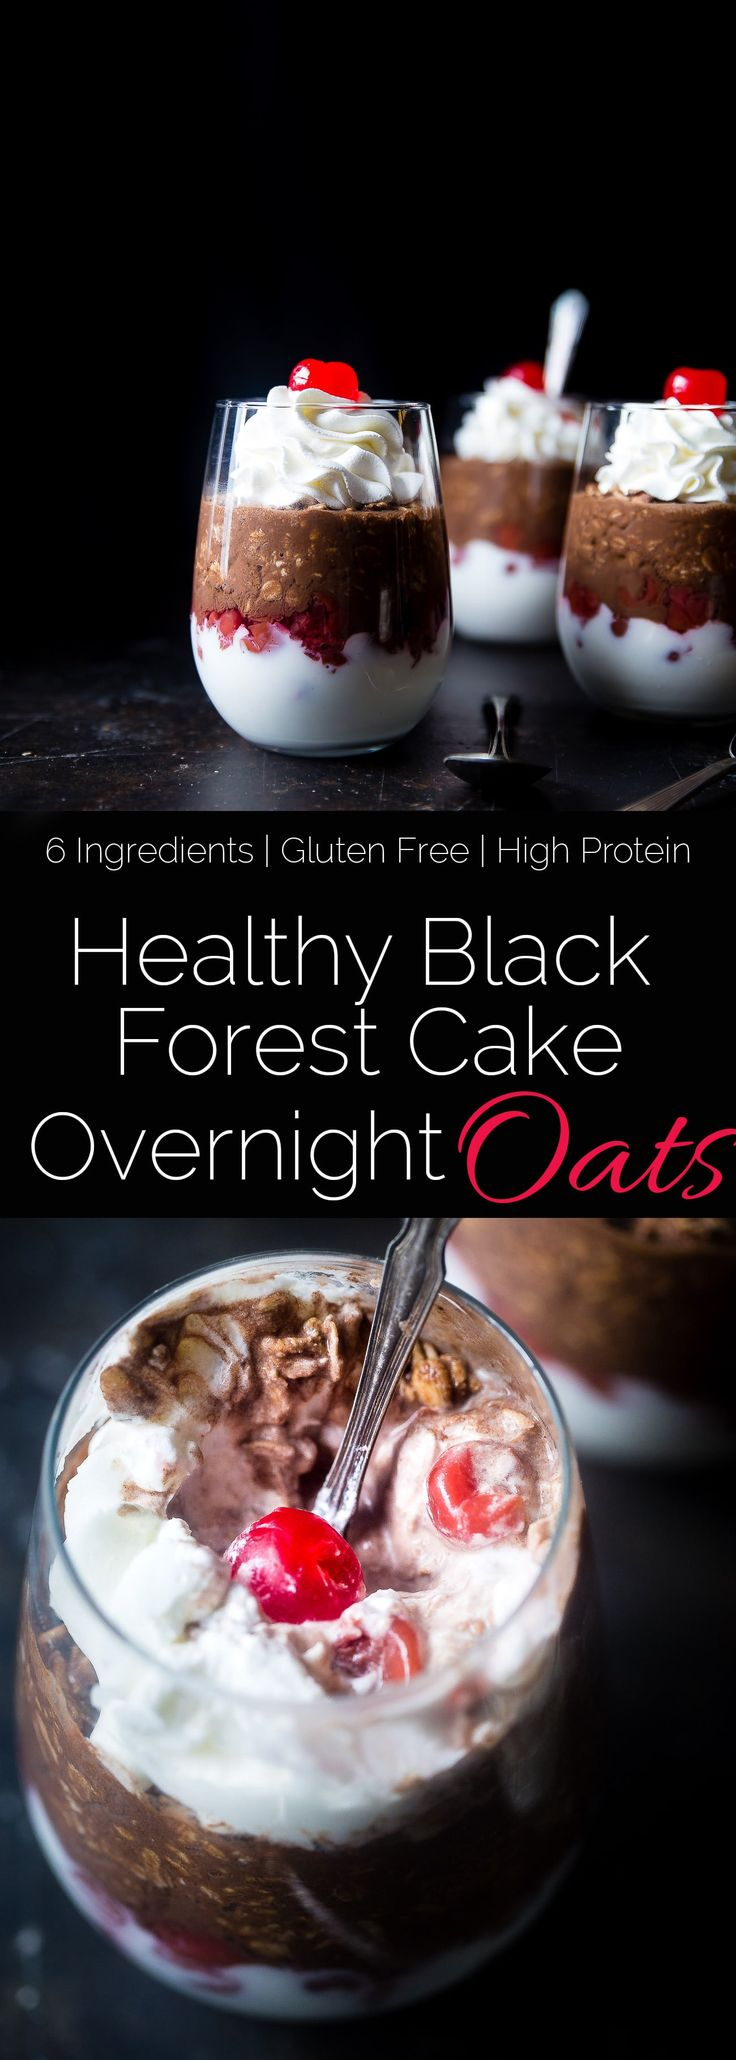 Black Forest Cake Overnight Oats - These 6 ingredient, quick and easy overnight oats have all the taste of the classic dessert in a healthy, gluten free and protein packed breakfast! | Foodfaithfitness.com | @FoodFaithFit via @FoodFaithFit